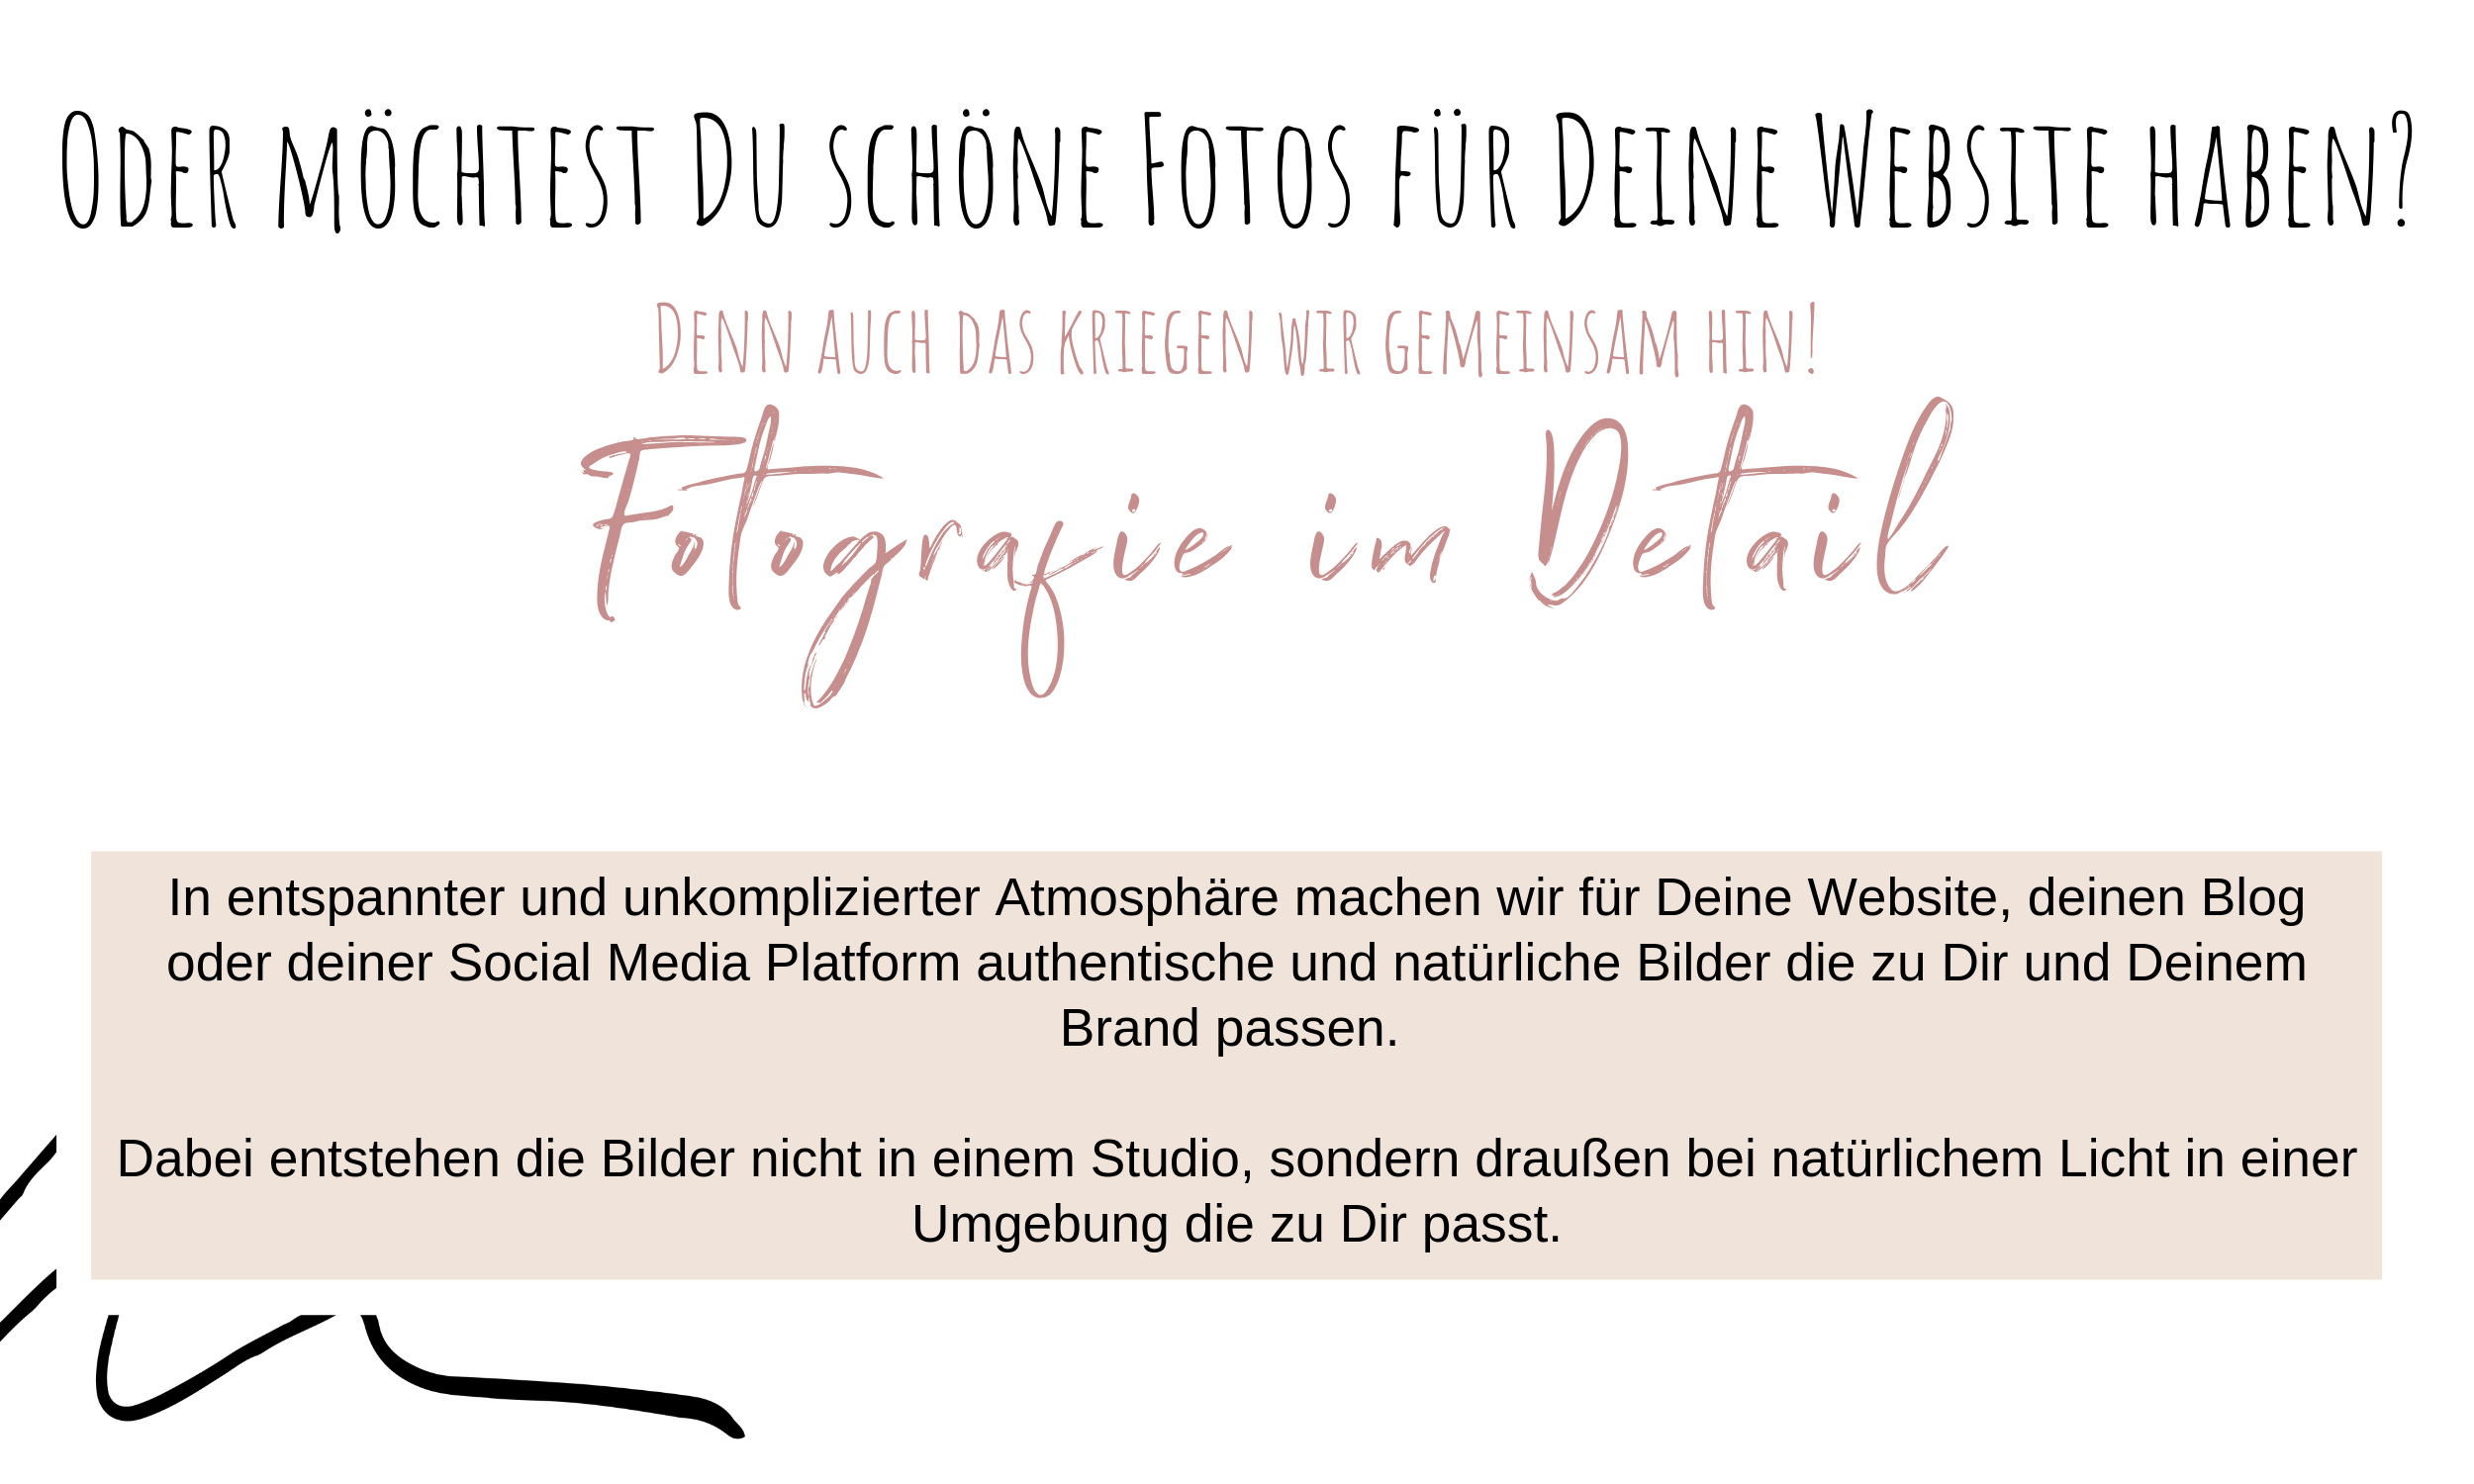 www.herprettybravesoul.com , herprettybravesoul homepage, herrpettybravesoul – deine virtuelle assistentin, virtuelle assistentin, kreativer kopf, fotografie, porträtfotografie, Virtuelle Assistentin Leisttungen, social media management, back office, pakete, fotografiedienstleitungen im Detail, Portraitfotografie, blogger fotografin